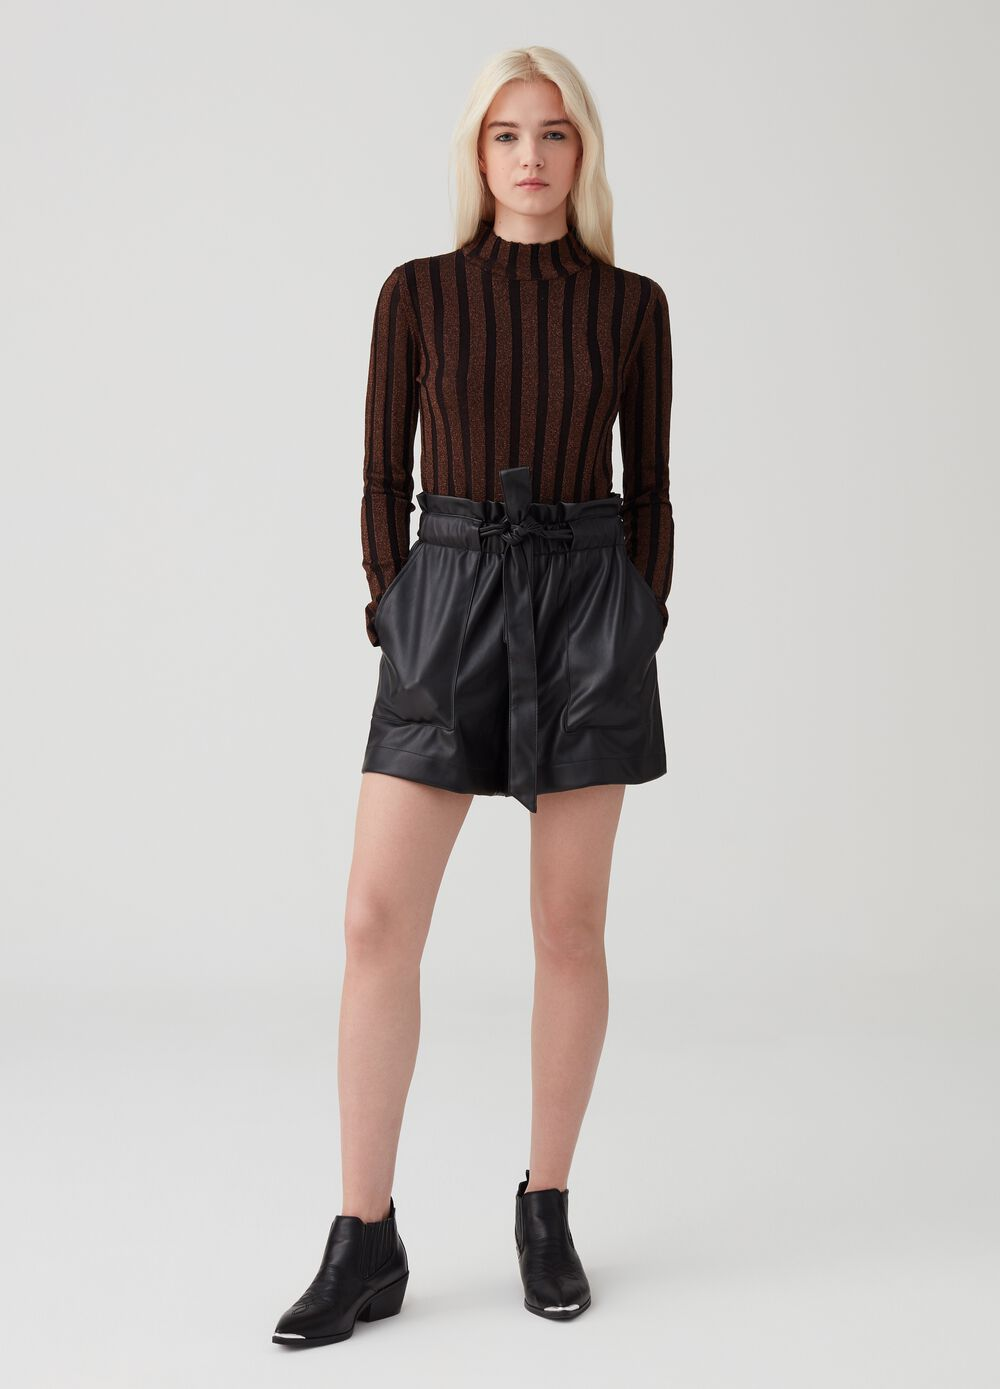 Leather-look shorts with pockets